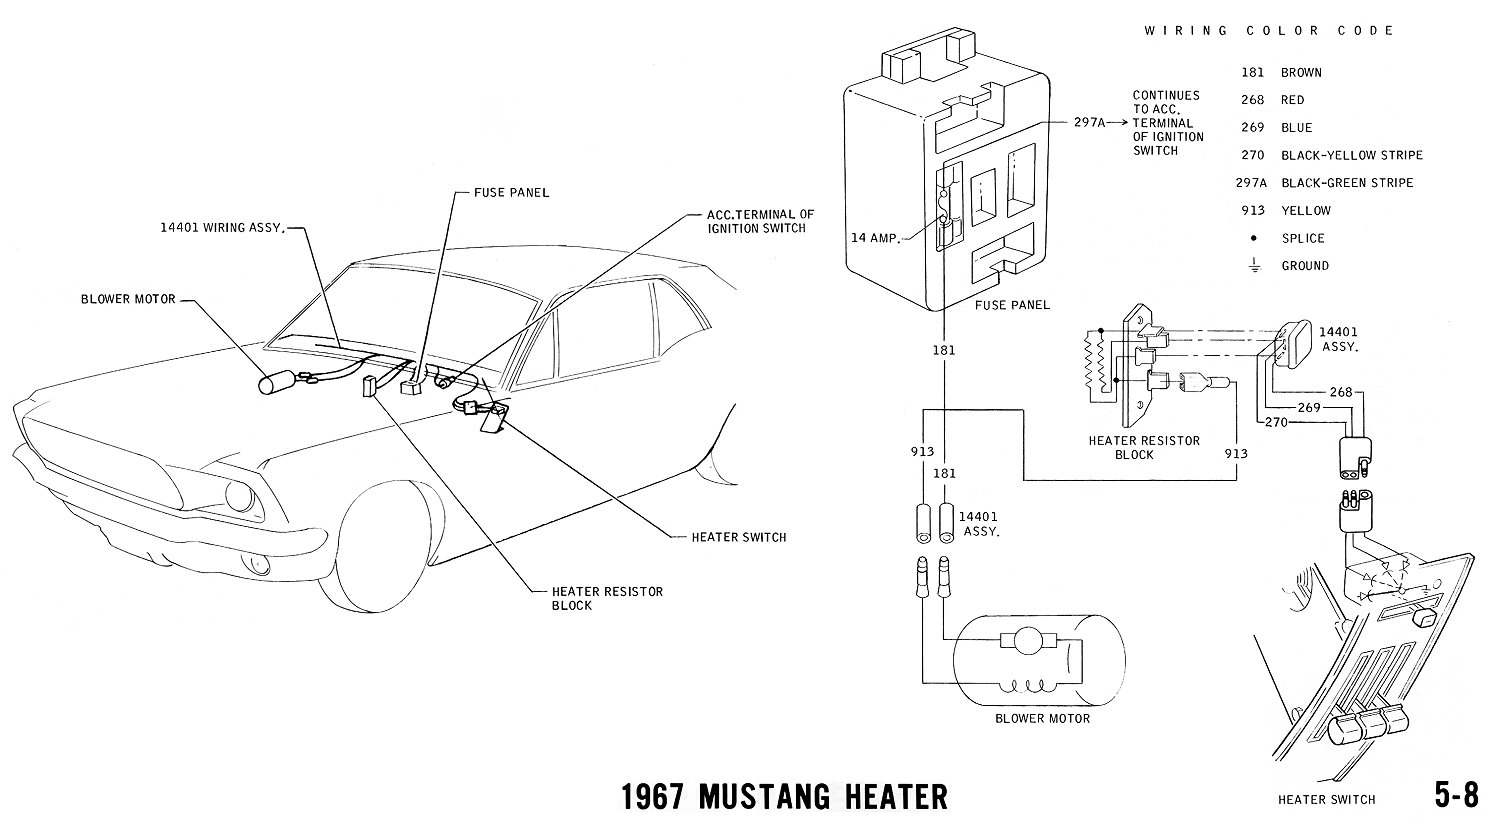 67 Mustang Fuse Box Diagram - wiring diagrams schematics